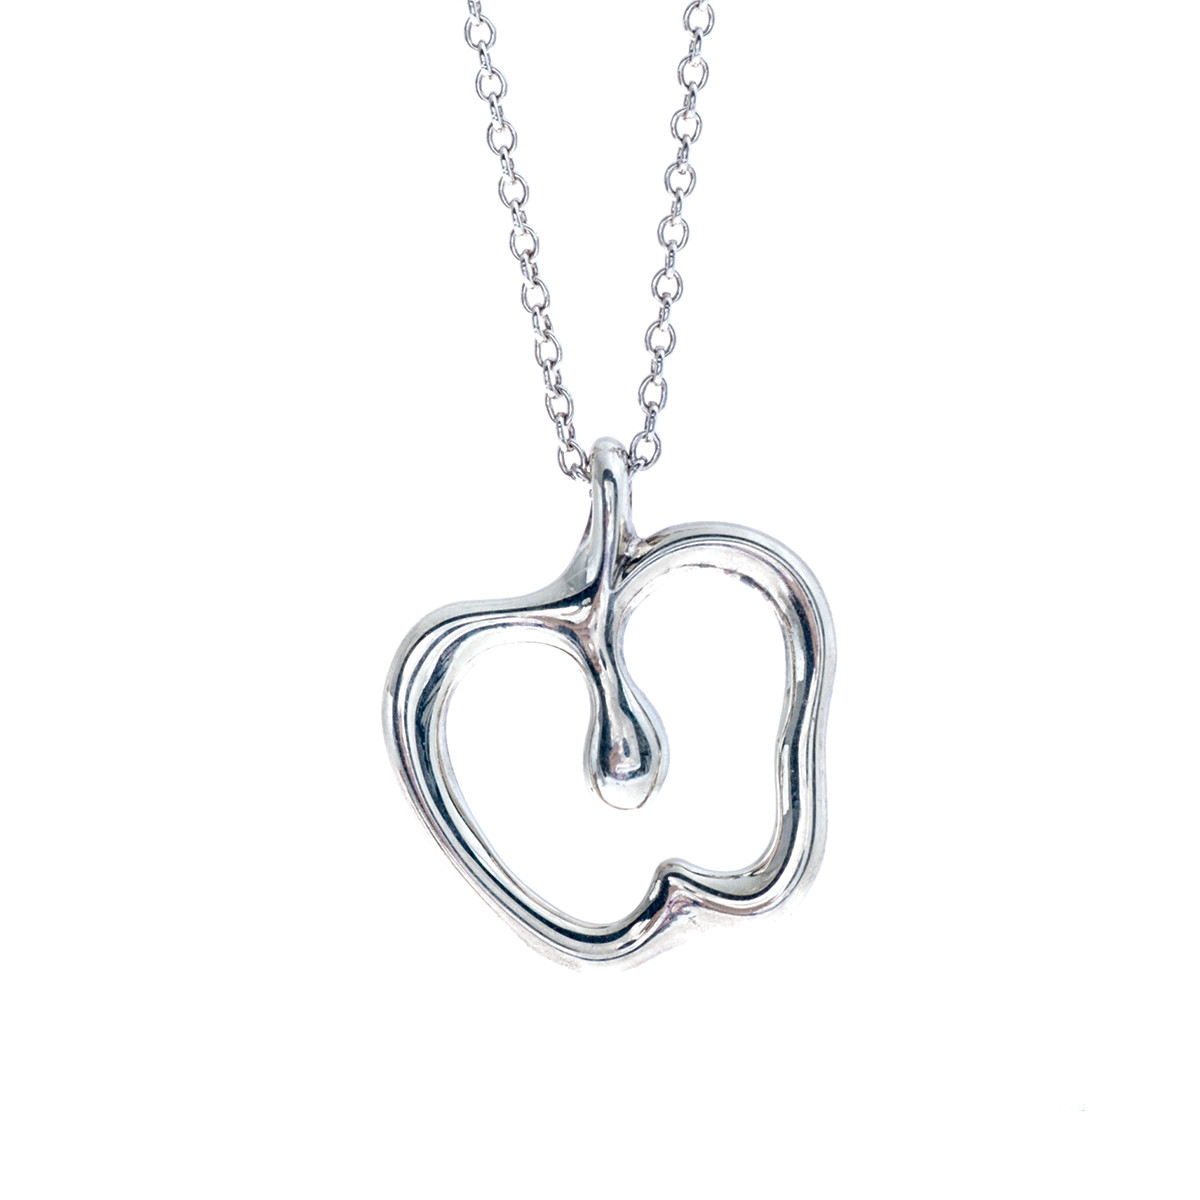 DGRR likewise Ce9d1 additionally Vintage Tiffany Co Elsa Peretti Sterling Silver Apple Necklace as well Ford Ranger Parts Catalog in addition 95 Accord Factory Alarm Need Disable 2845348. on factory restore